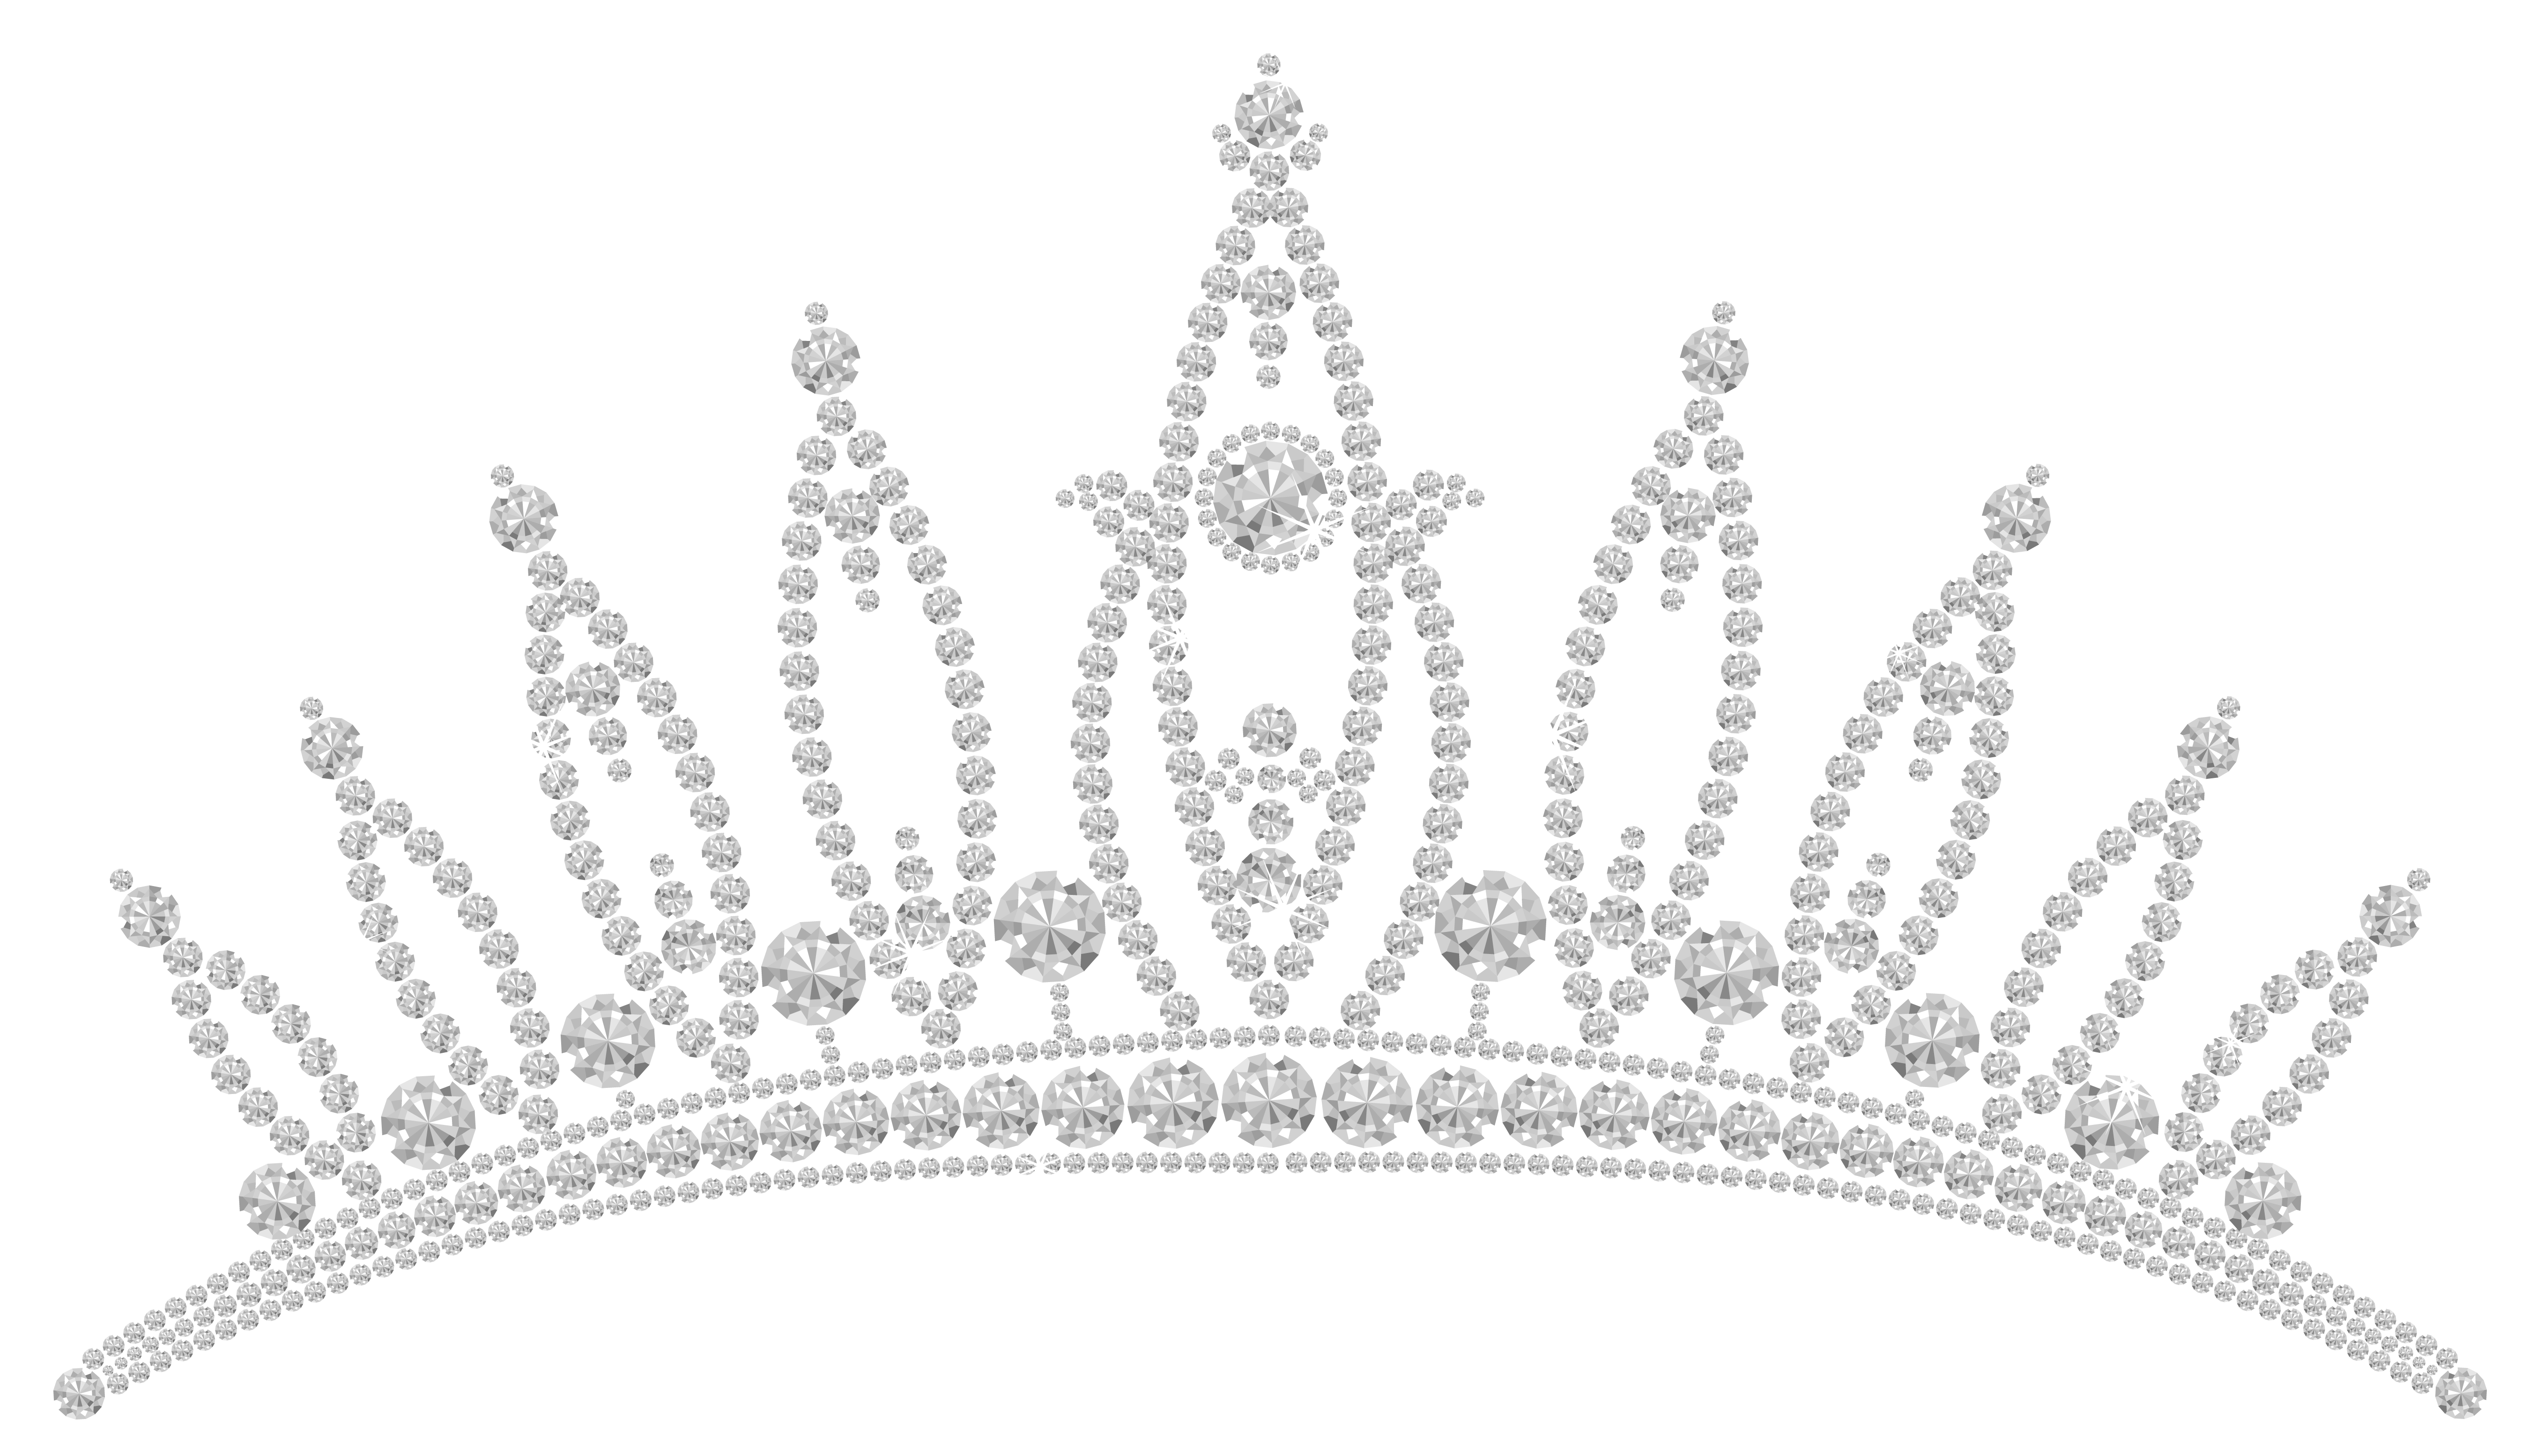 Tiara png picture gallery. Clipart diamond banner